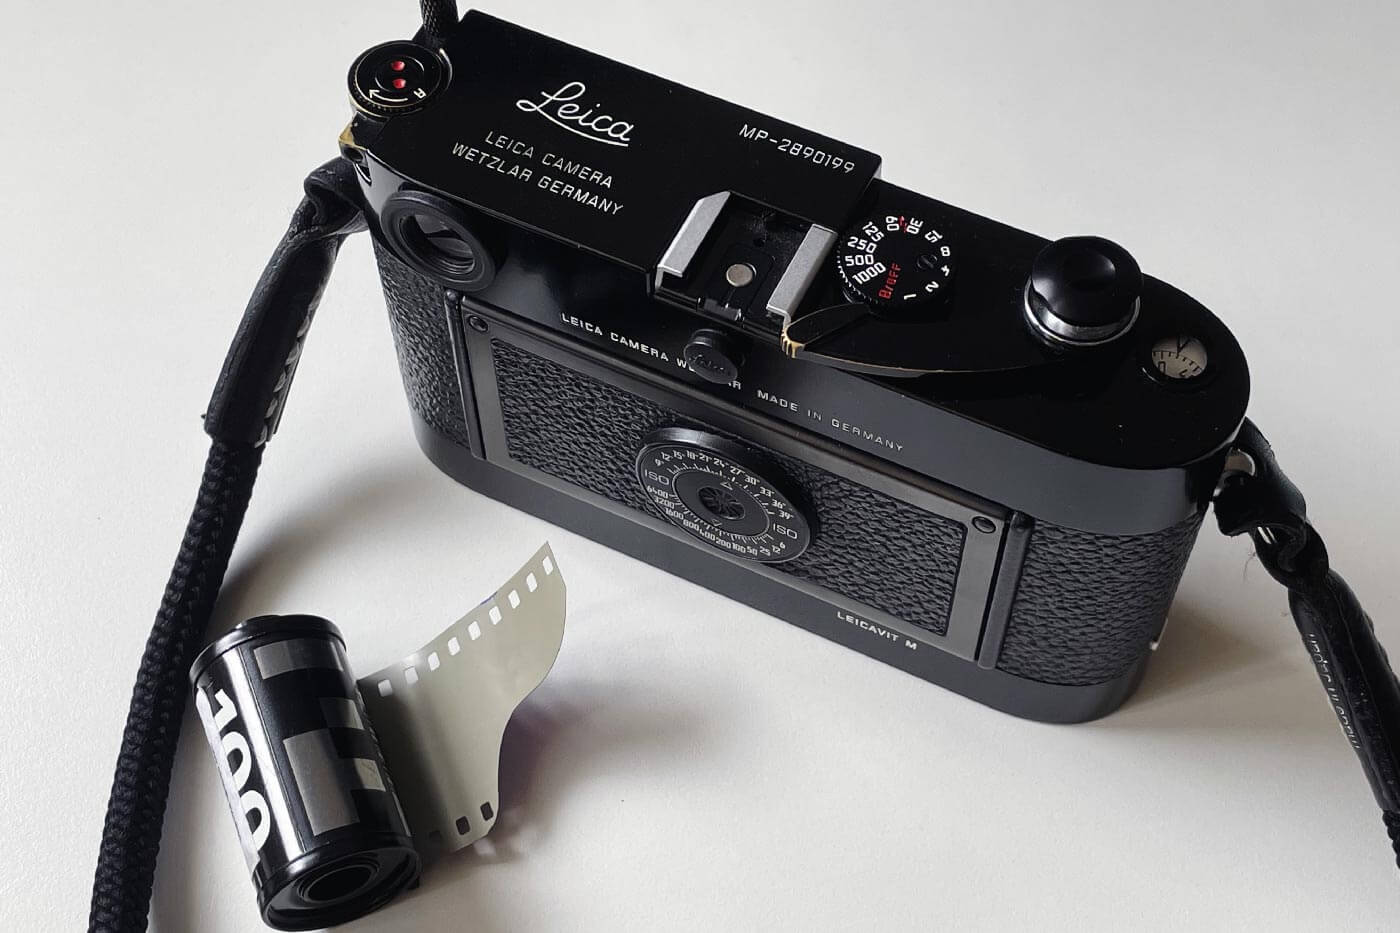 how-to-load-film-into-35mm-film-camera-135-extra-frame-properly-correct-way-best-check-beginner-tips-guide-advancing-first-frame-knob-rewind